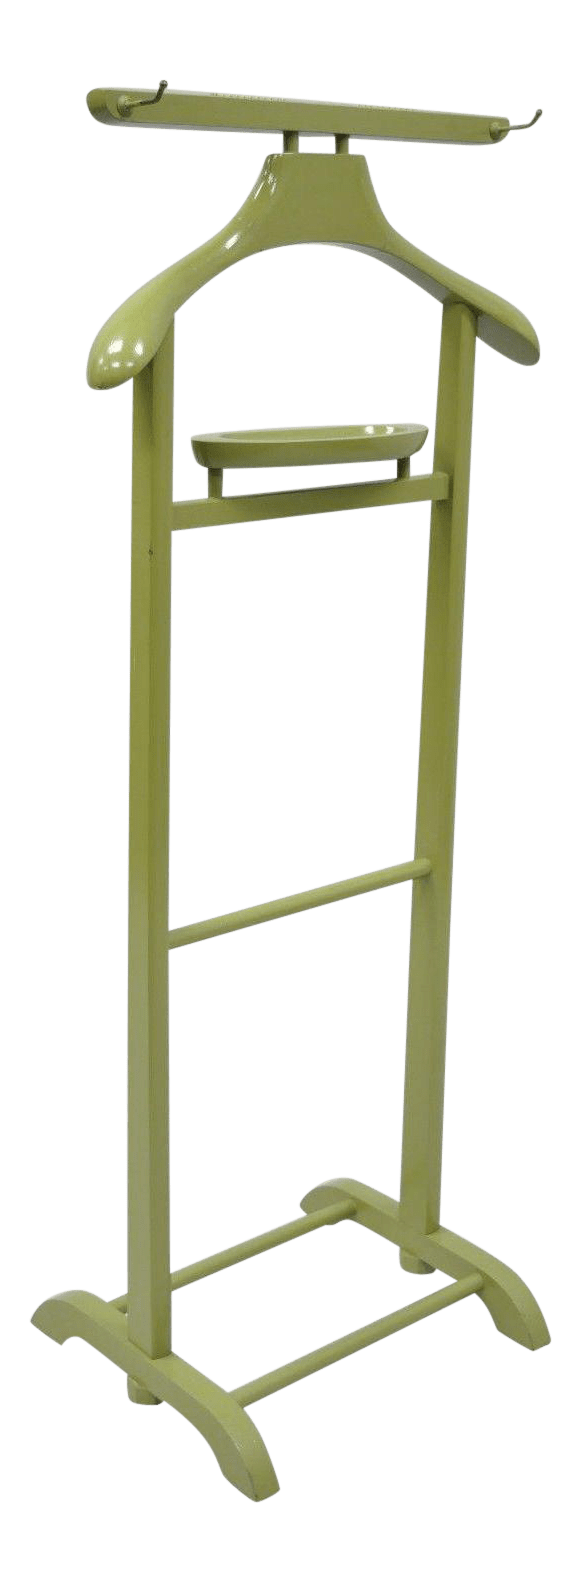 Cloth Hanger Stand Vintage Green Mid Century Modern Wood Clothing Valet Rack Stand Clothes Suit Hanger